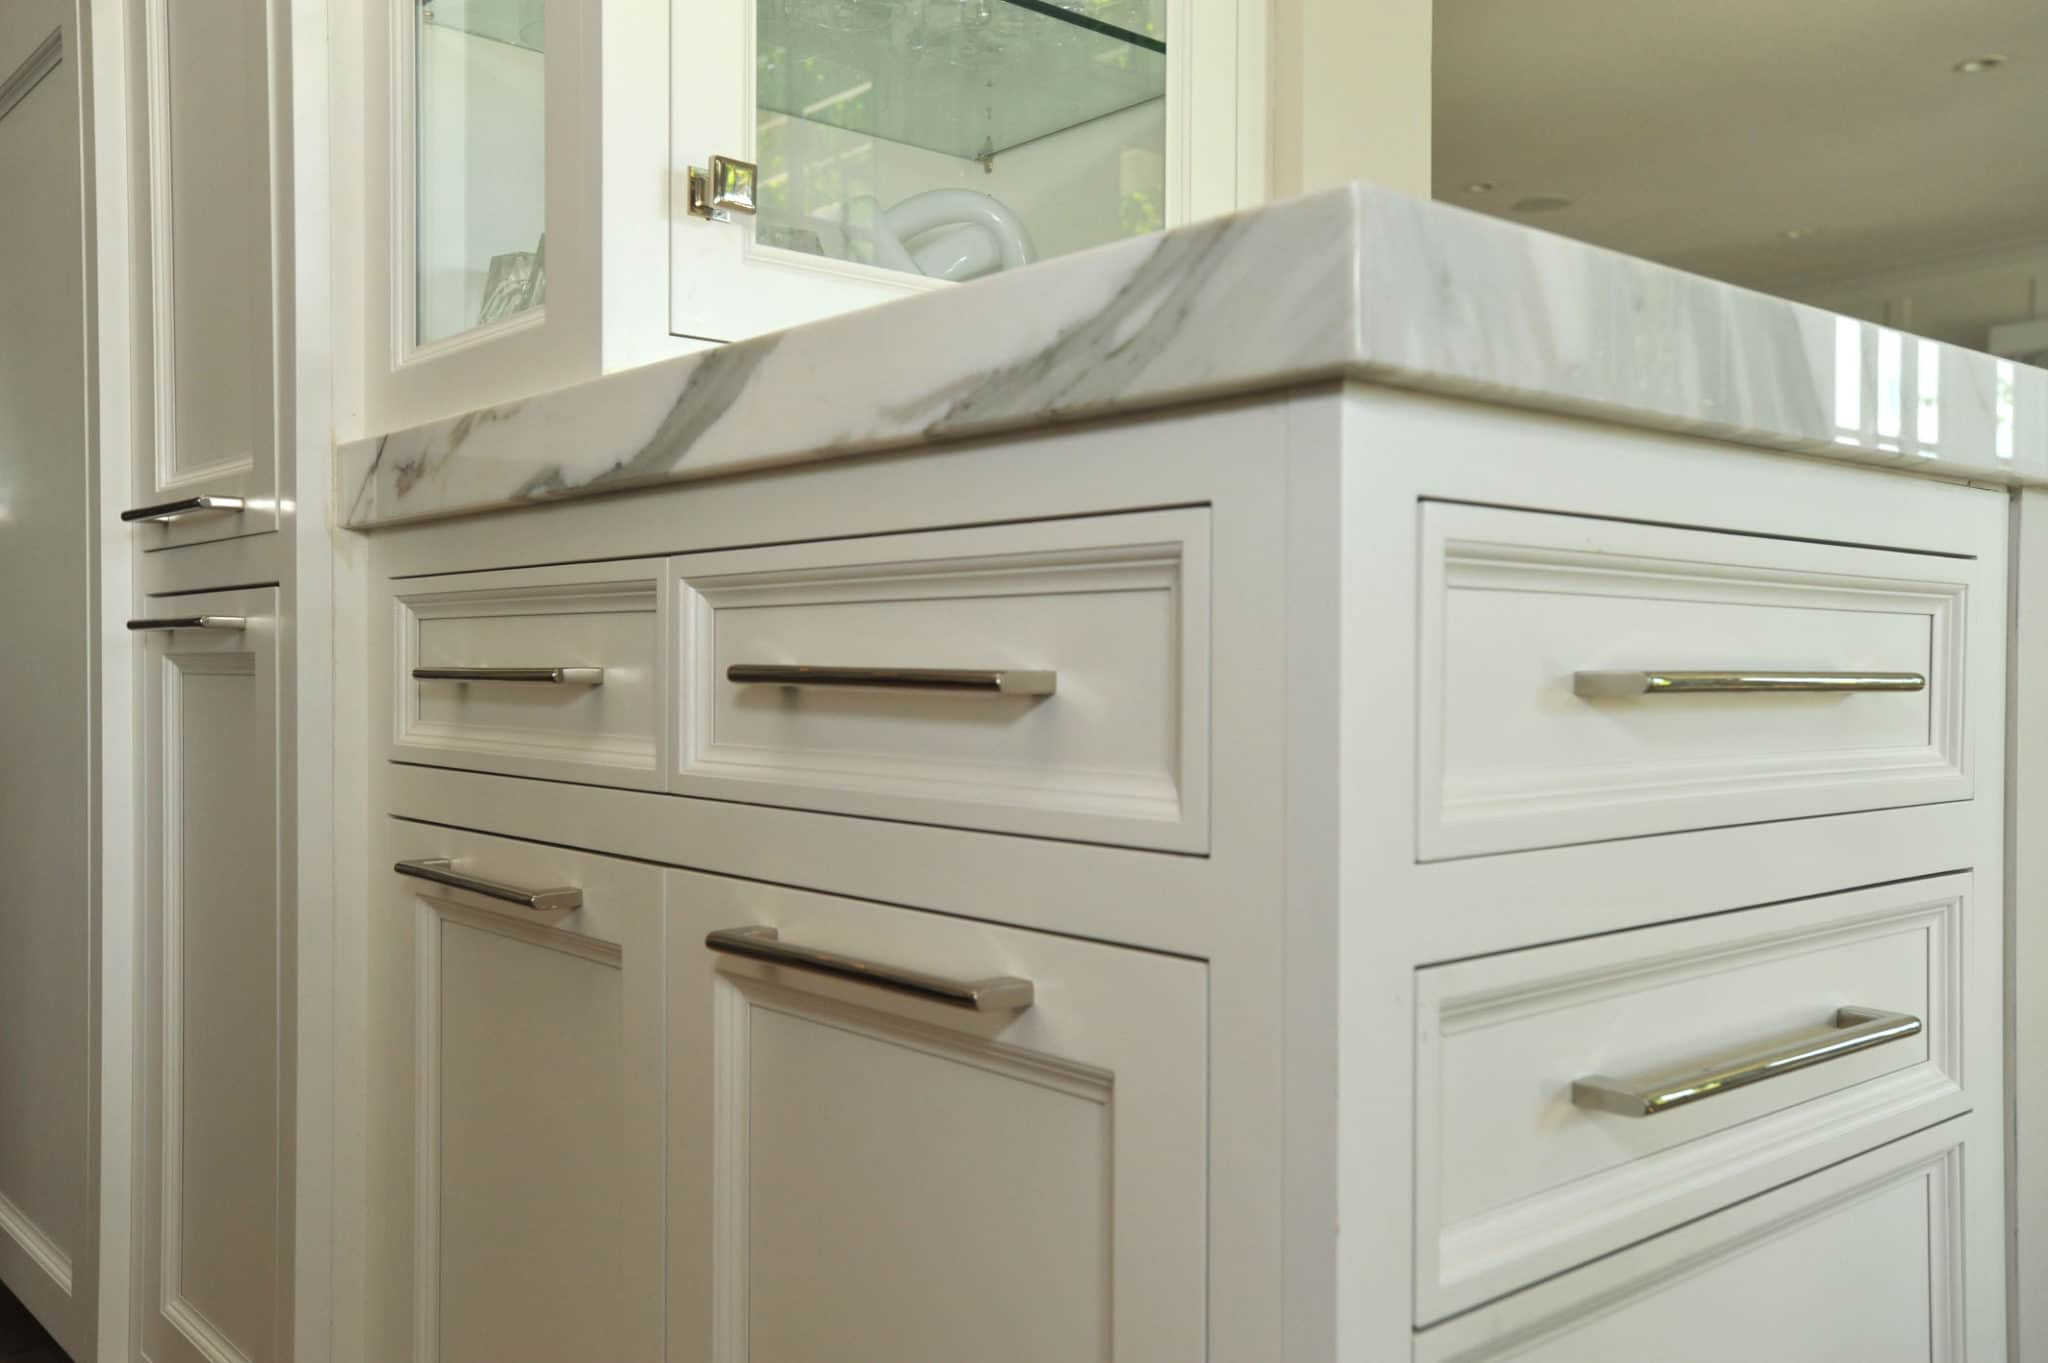 Cabinet hardware metropolitan cabinets for Kitchen cabinets hardware